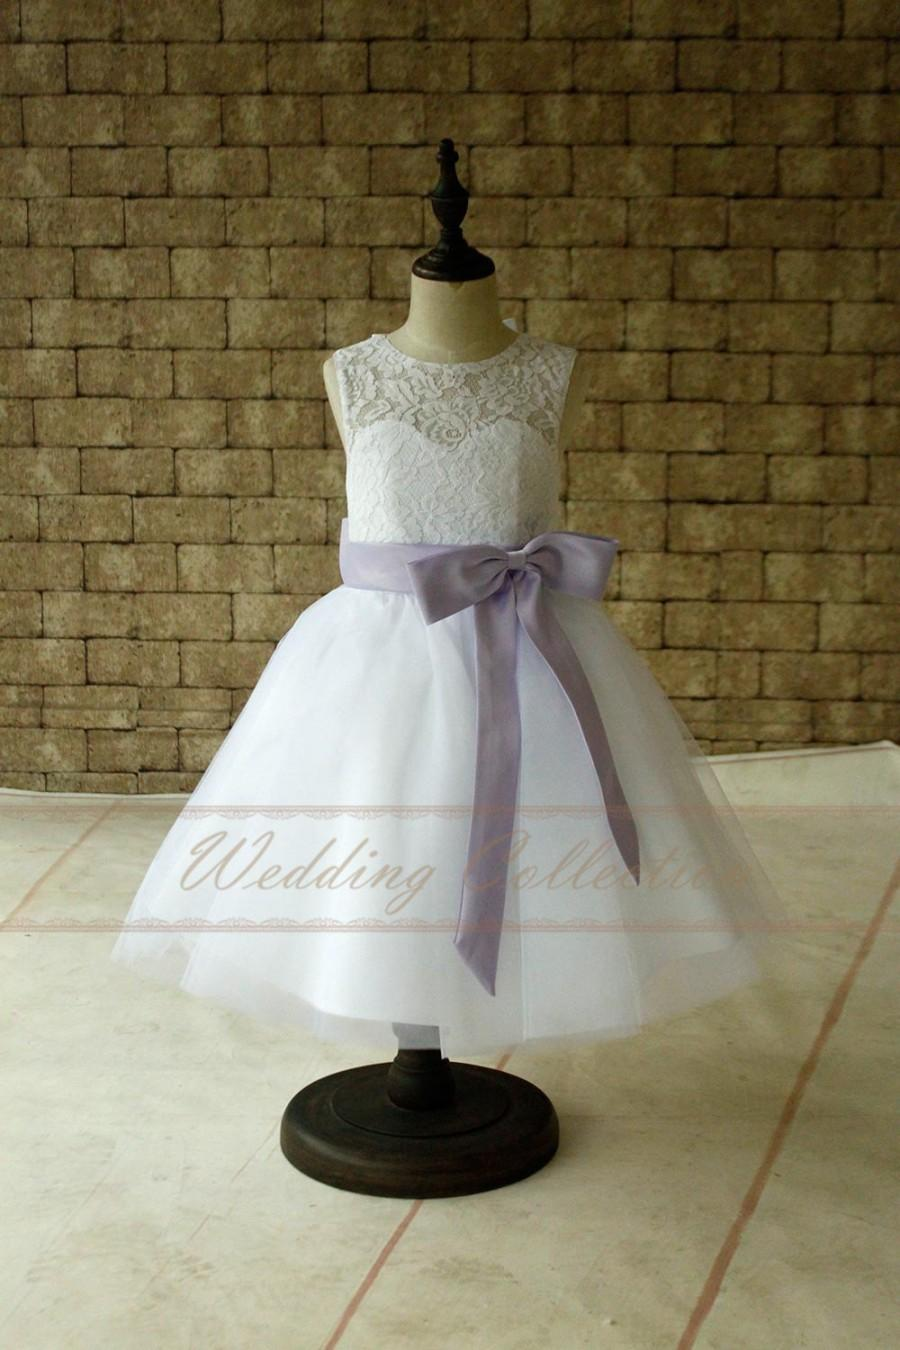 Düğün - Pure White Lace Flower Girl Dresses, Tulle Flower Girls Dress With Lavender Sash and Bow